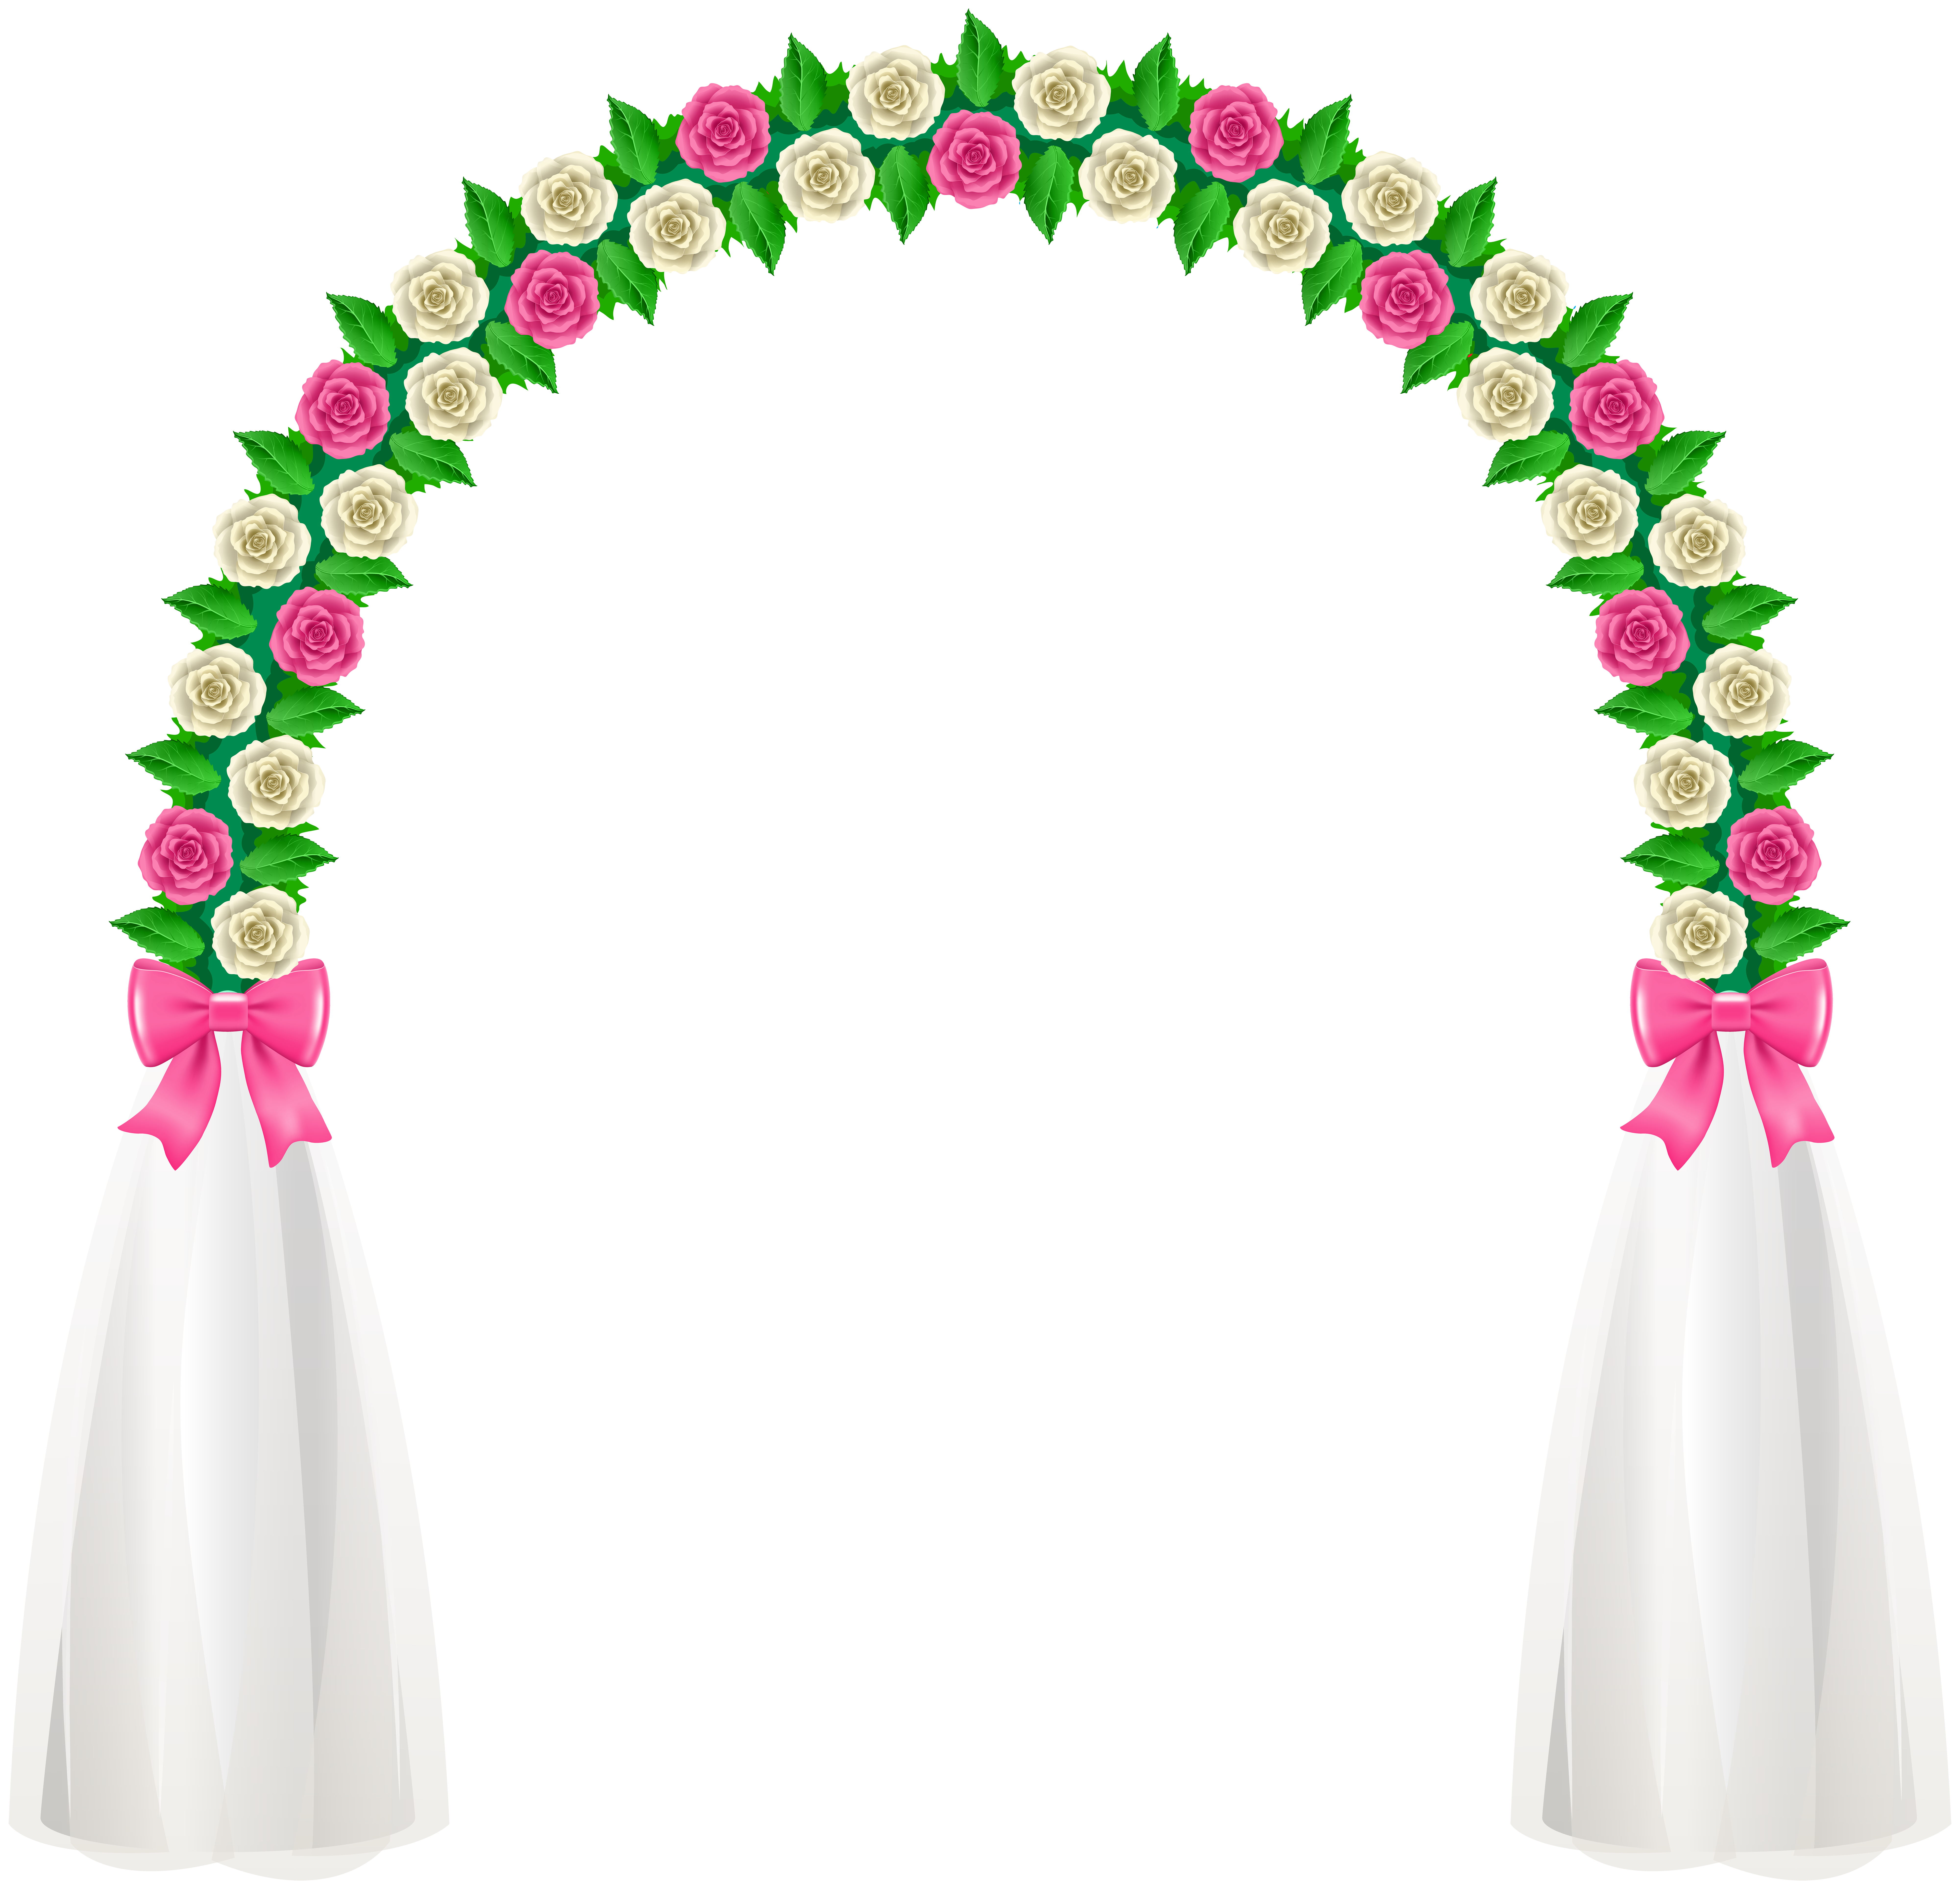 Wedding arch png art. Clip from image royalty free